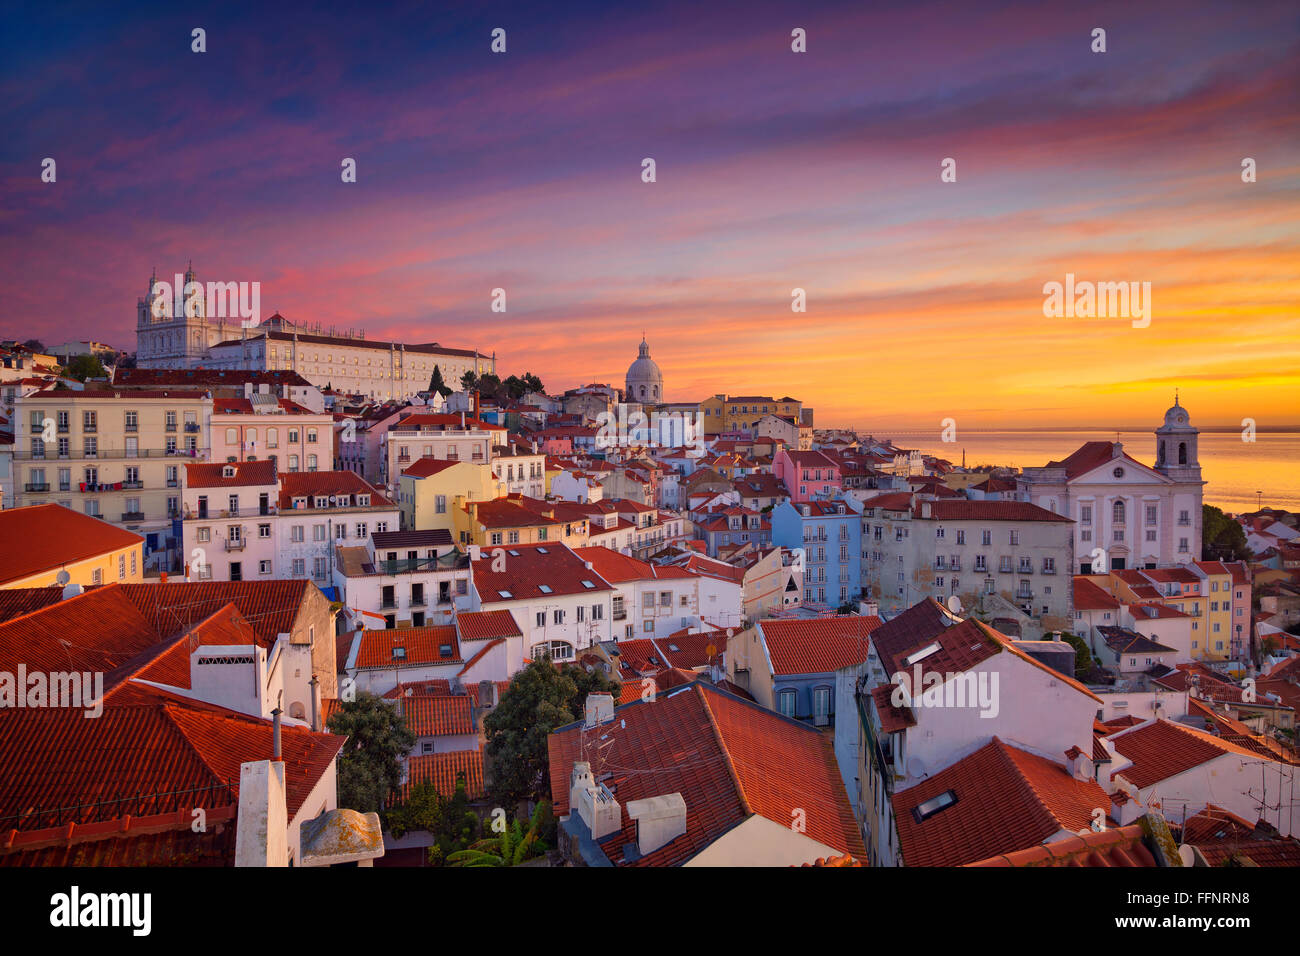 Lisbon. Image of Lisbon, Portugal during dramatic sunrise. - Stock Image